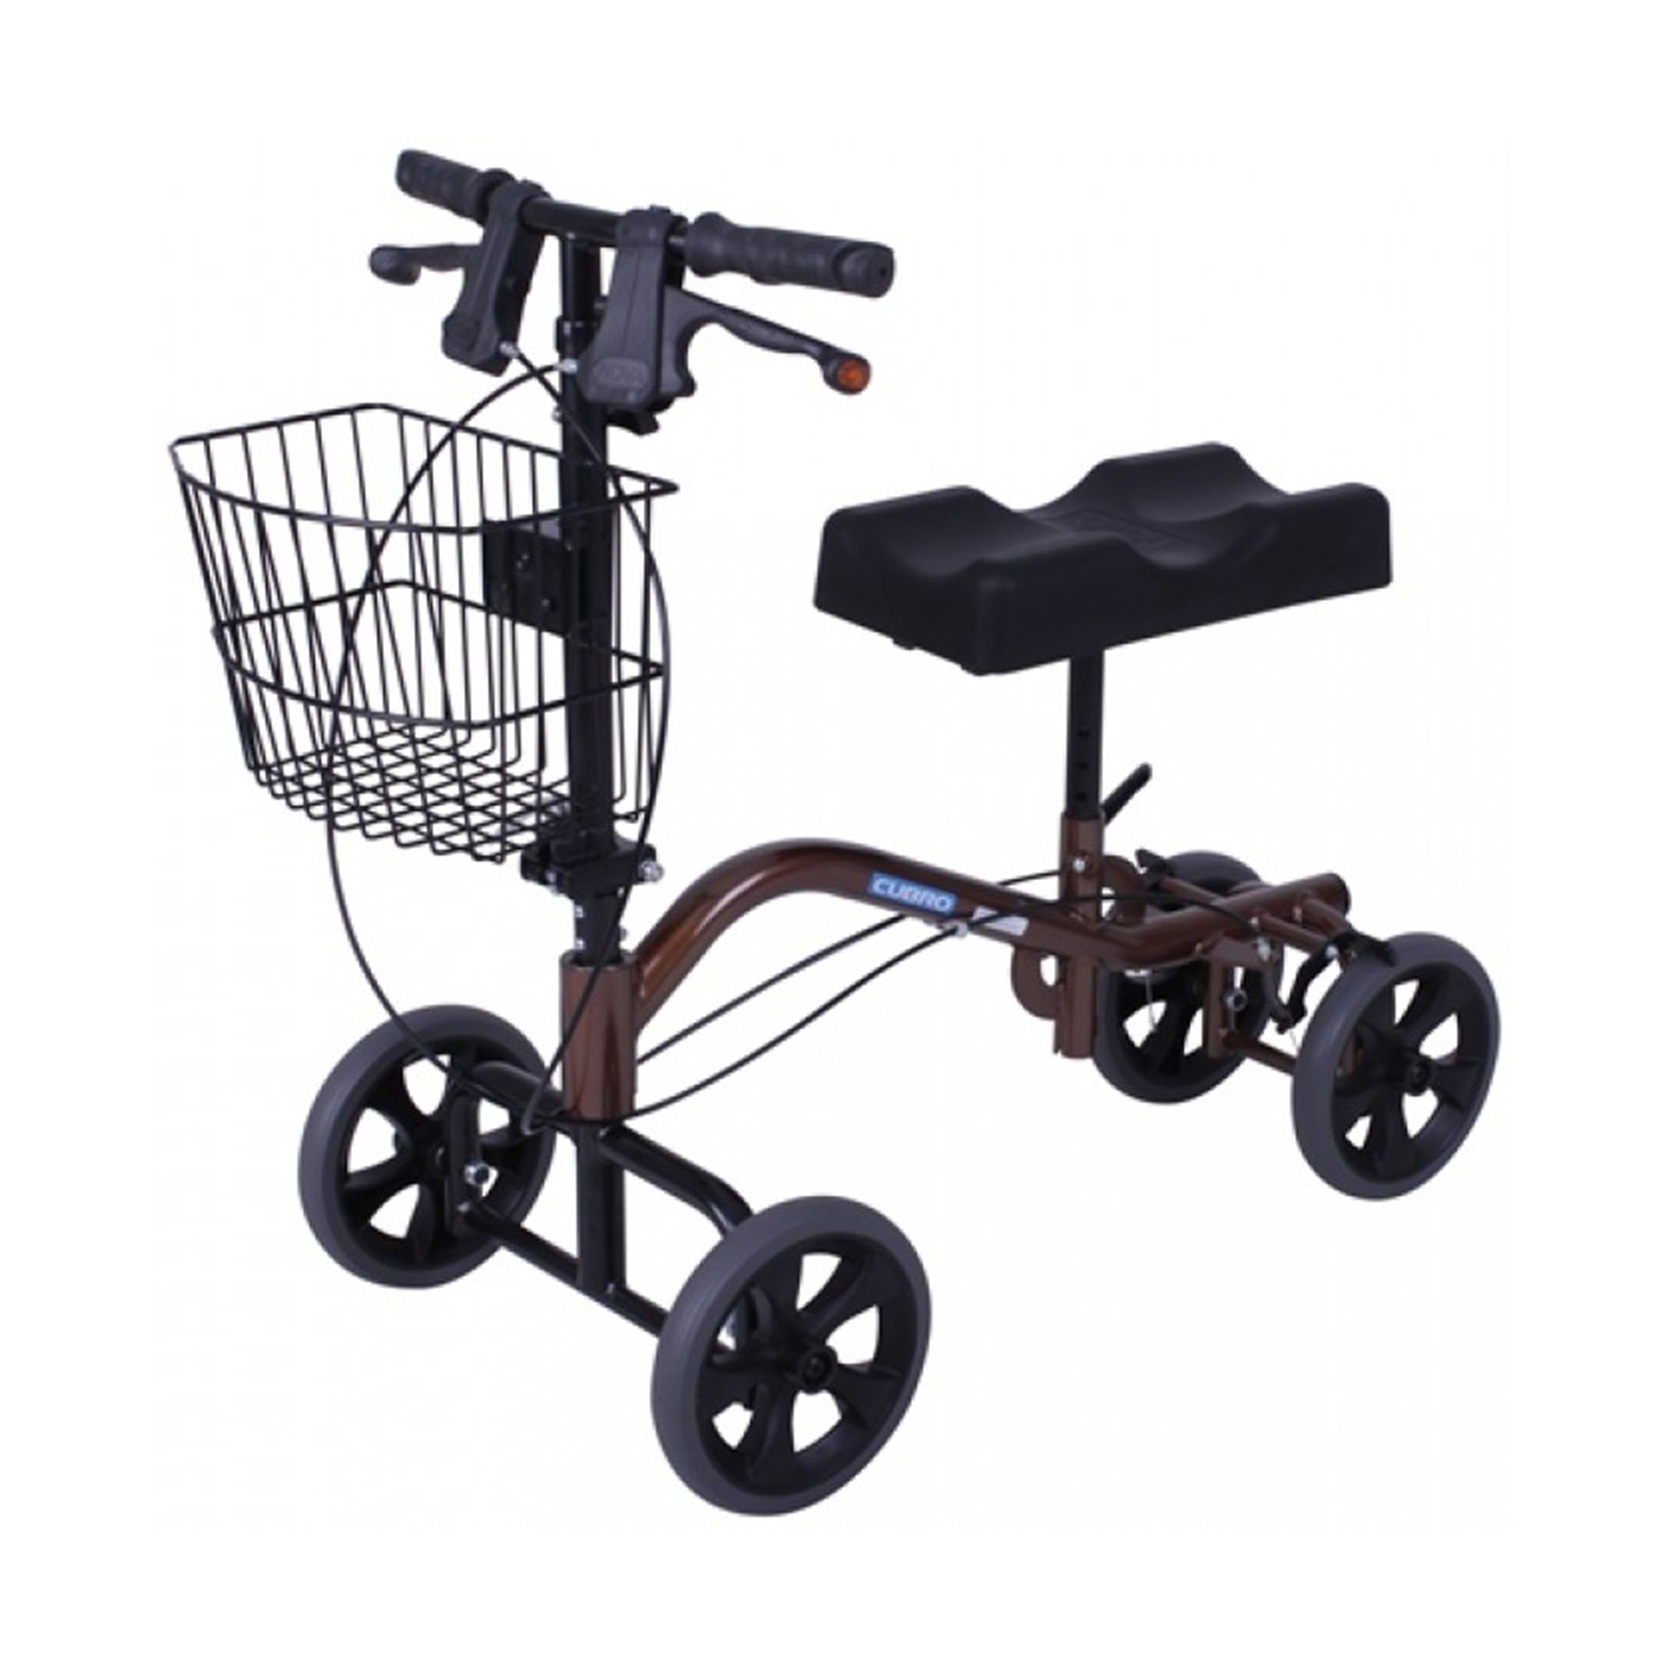 Freiheit Knee Walker - Visit the store to learn more →